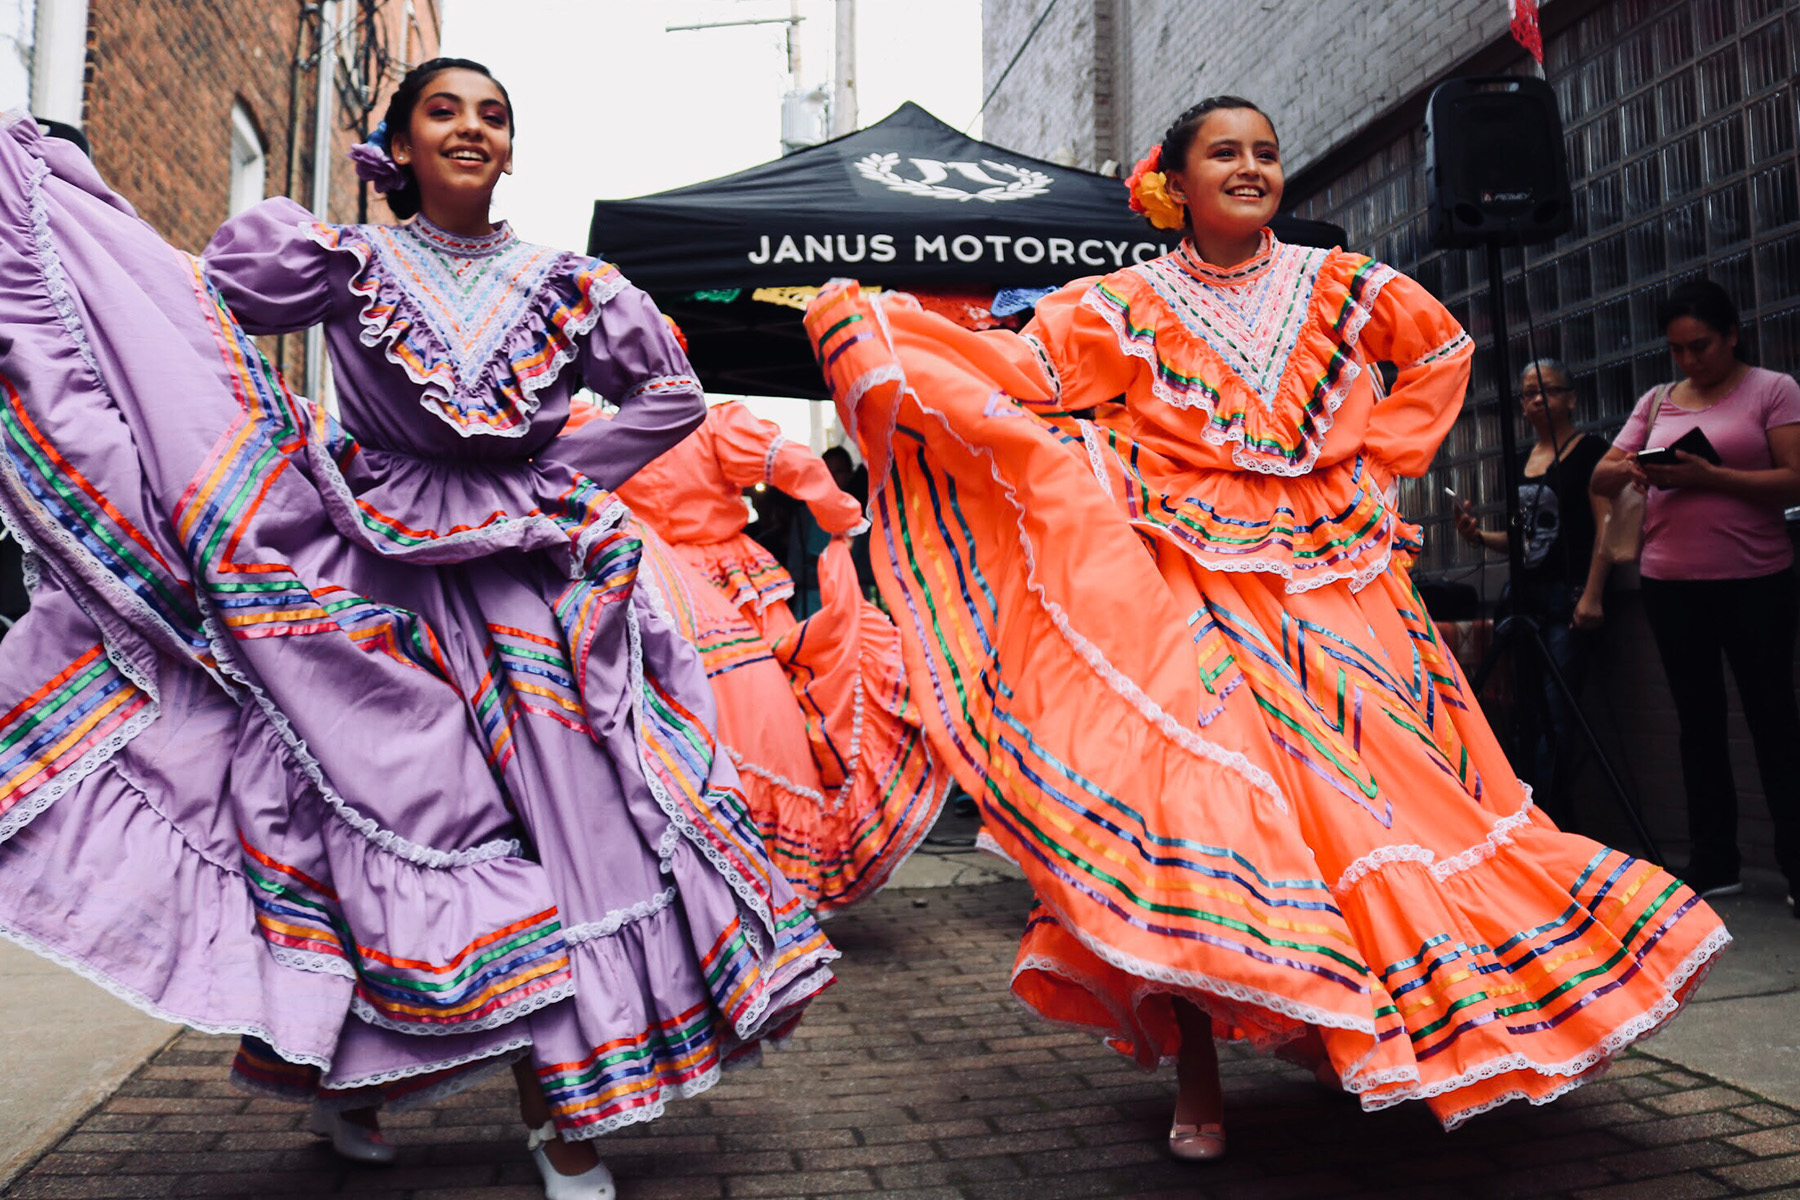 Dancers in Mexico